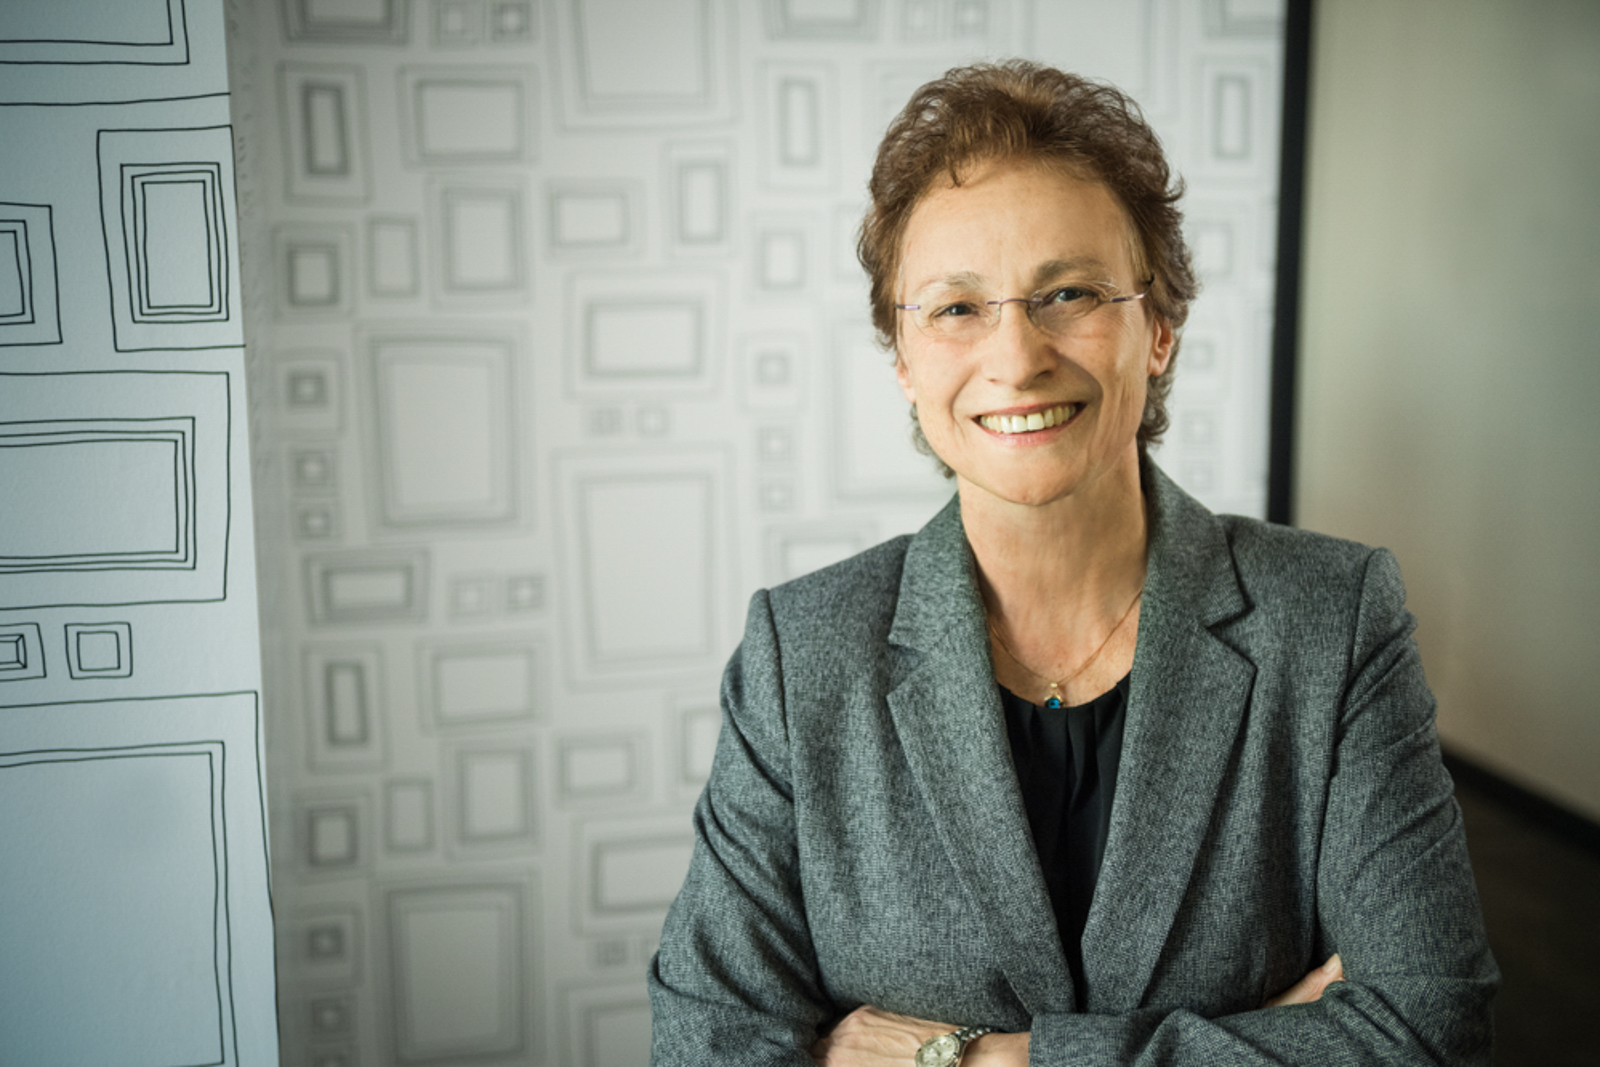 Business woman smiling in front of creative background